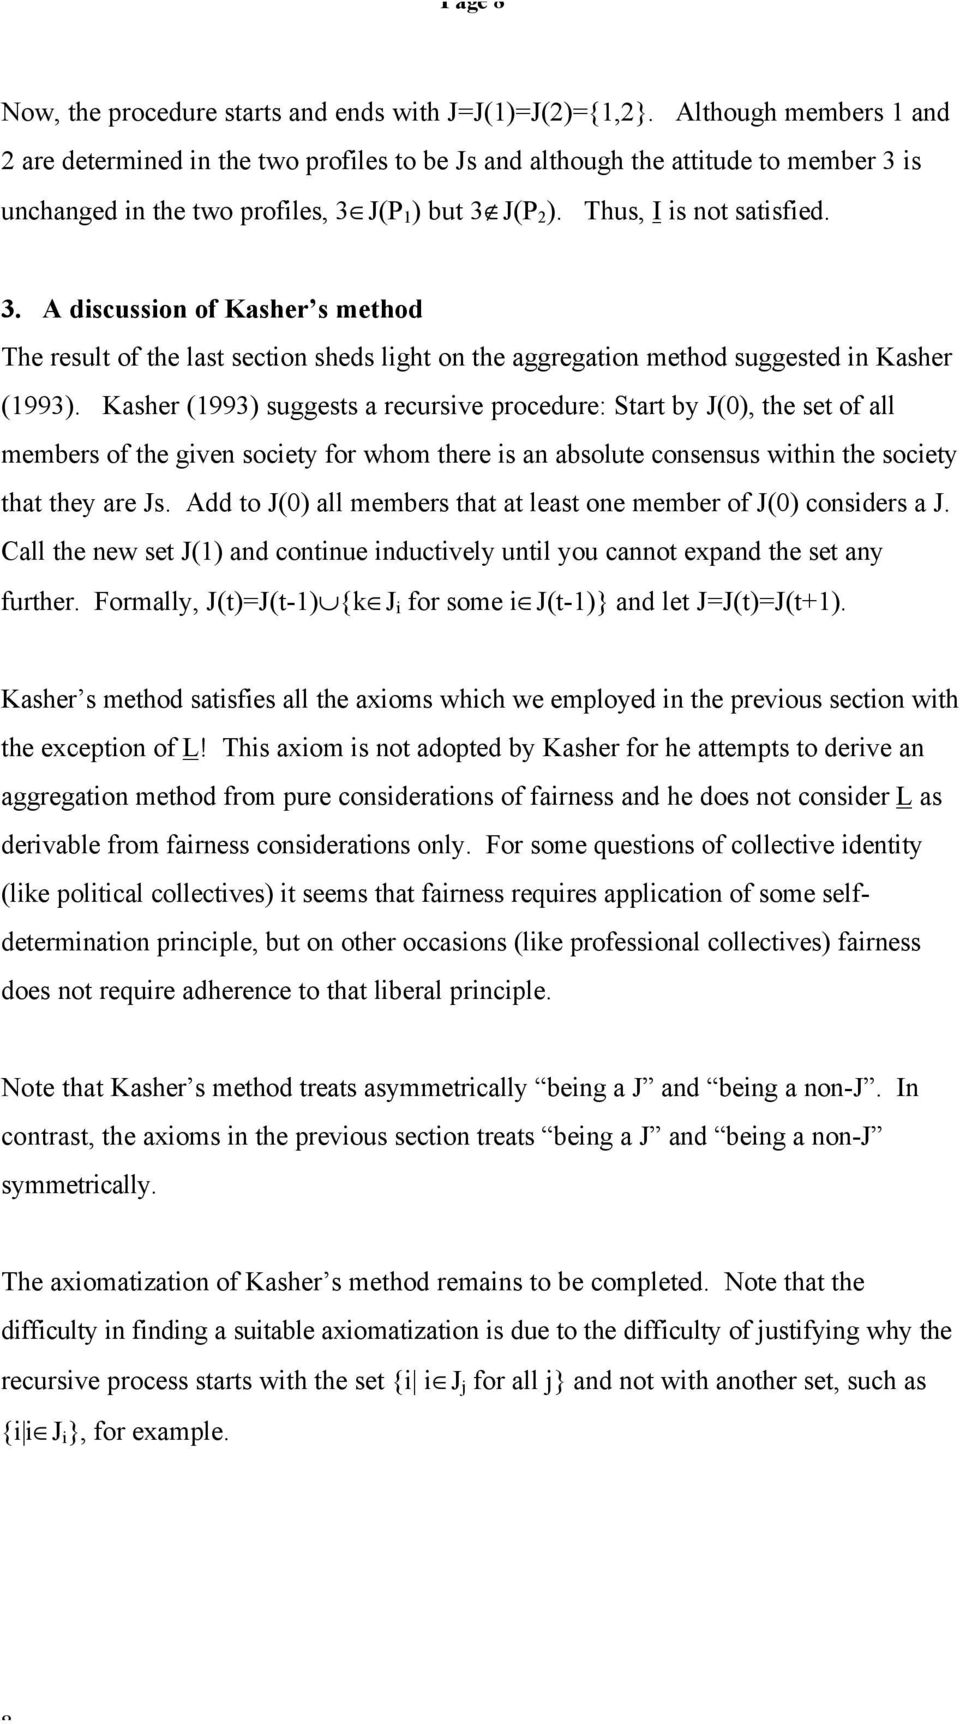 is unchanged in the two profiles, 3 J(P 1 ) but 3 J(P 2 ). Thus, I is not satisfied. 3. A discussion of Kasher s method The result of the last section sheds light on the aggregation method suggested in Kasher (1993).